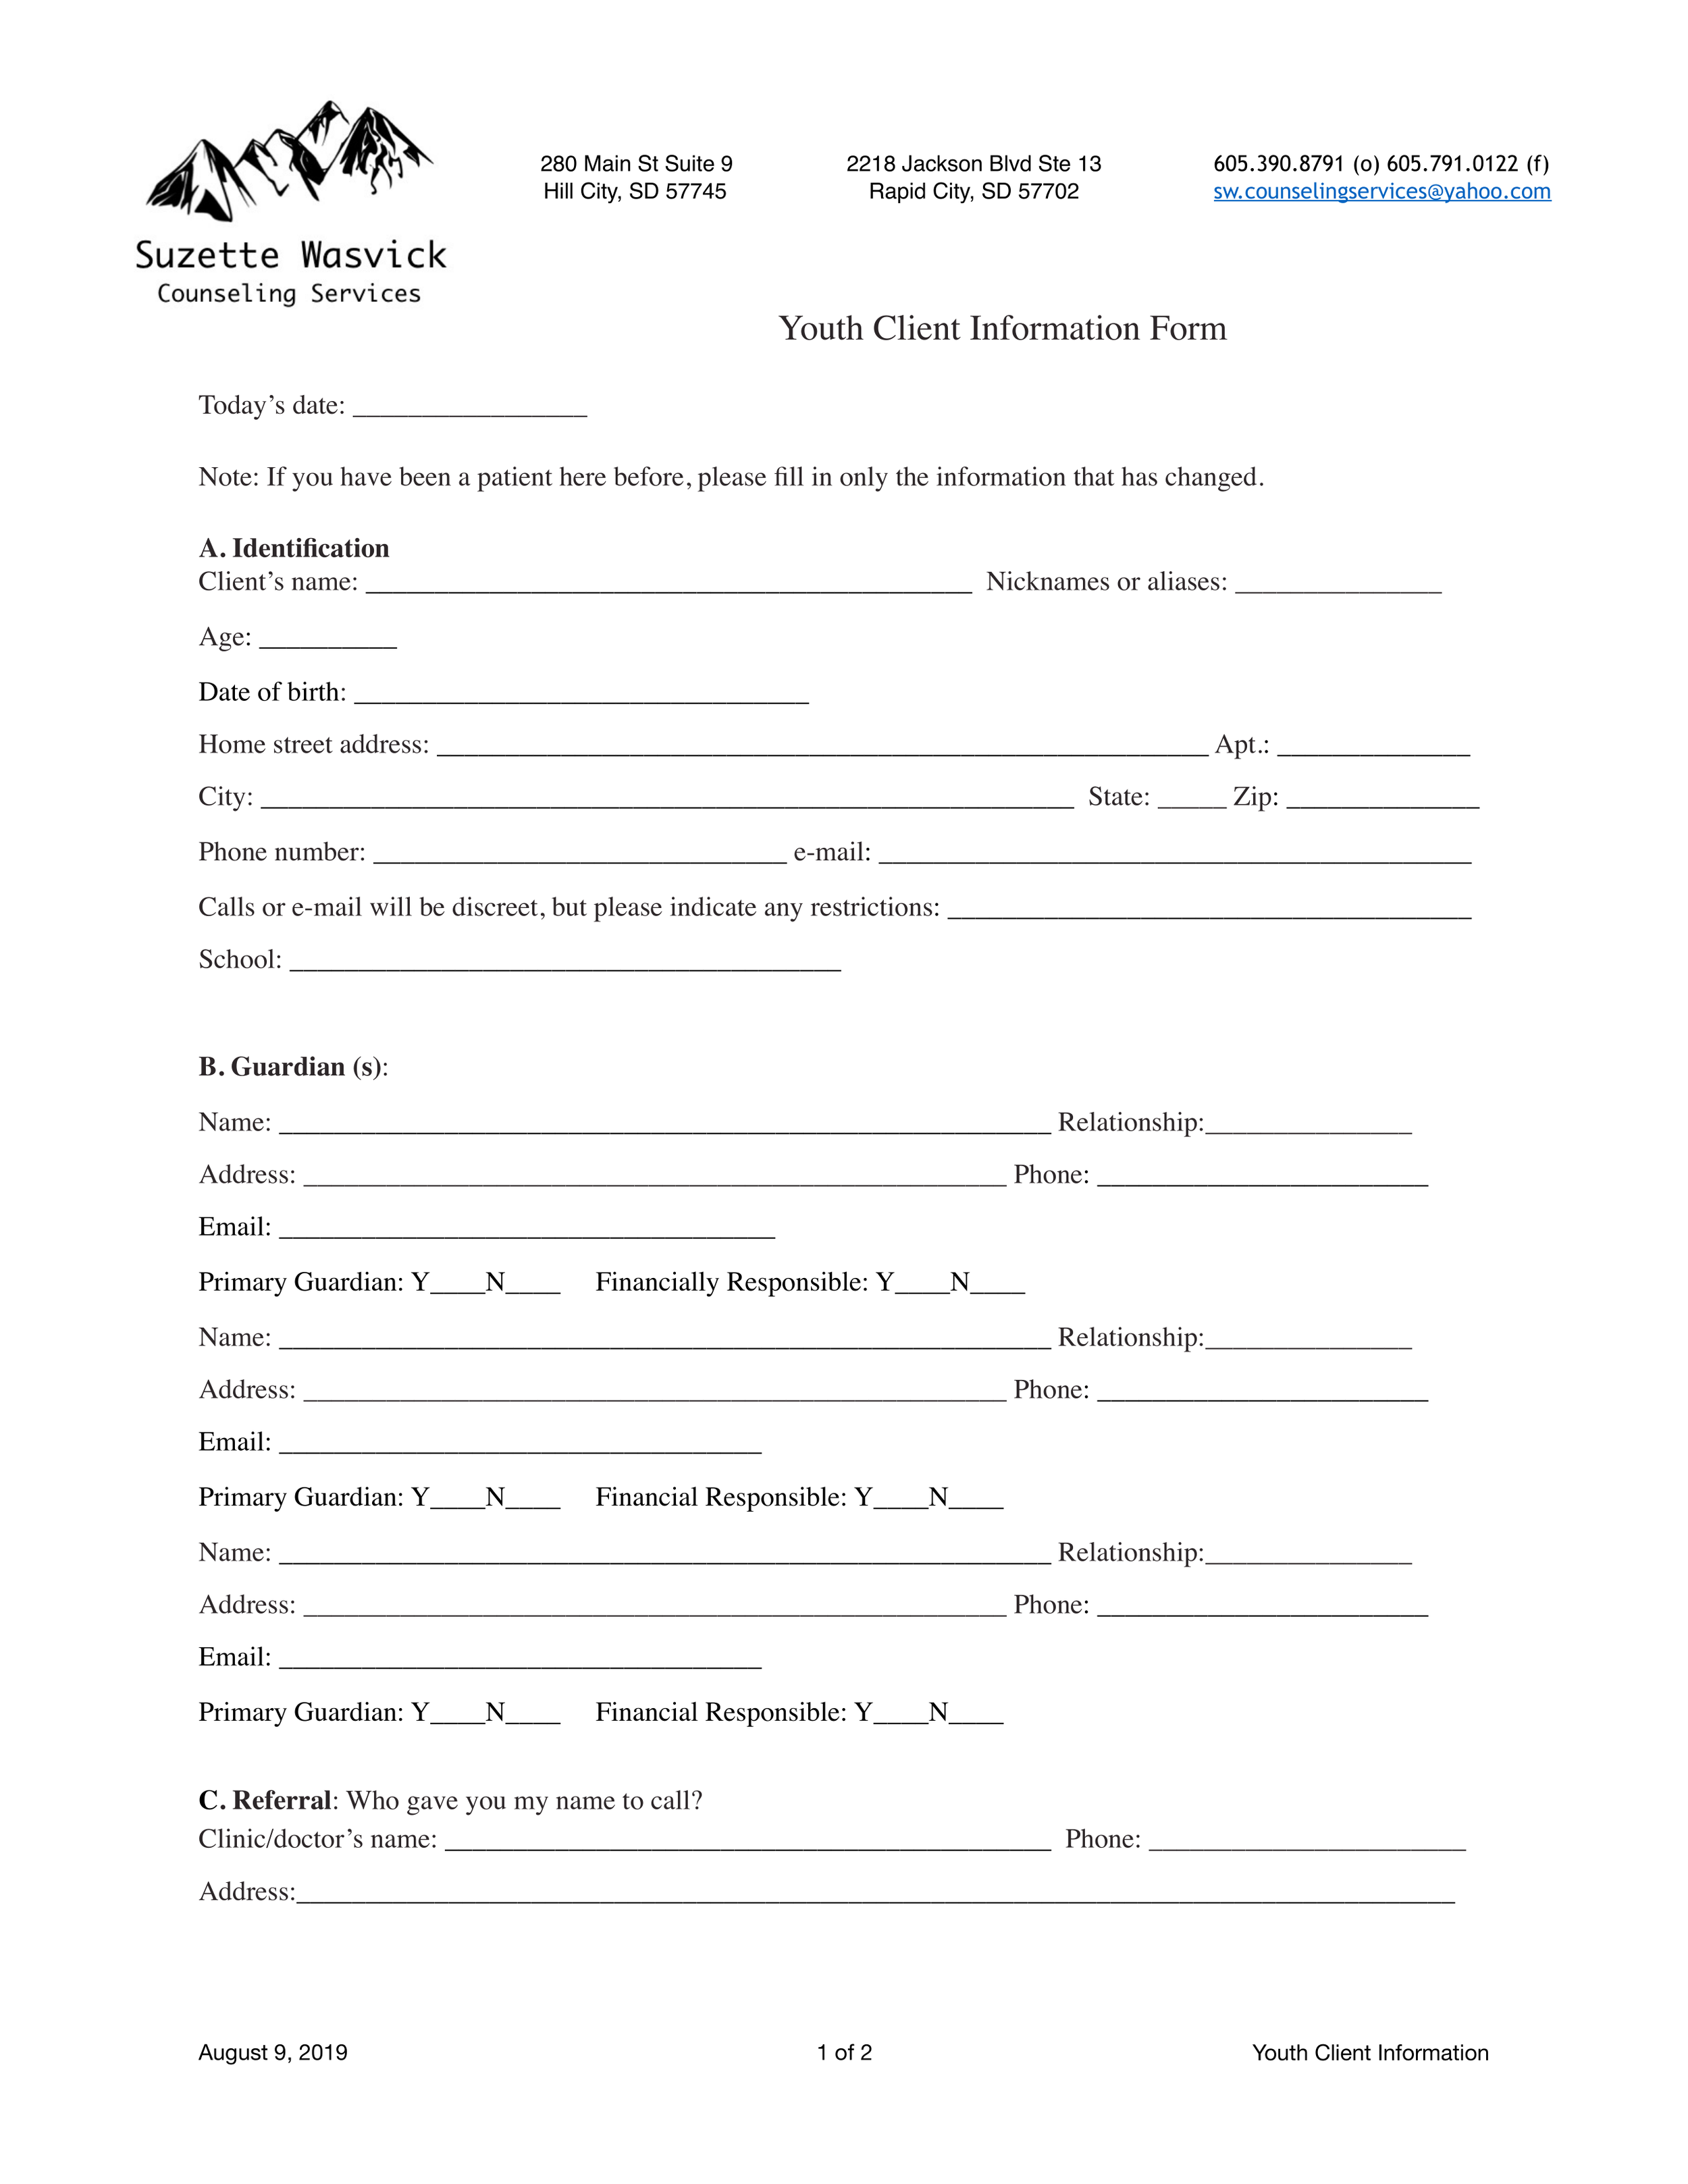 Youth Client Information Form